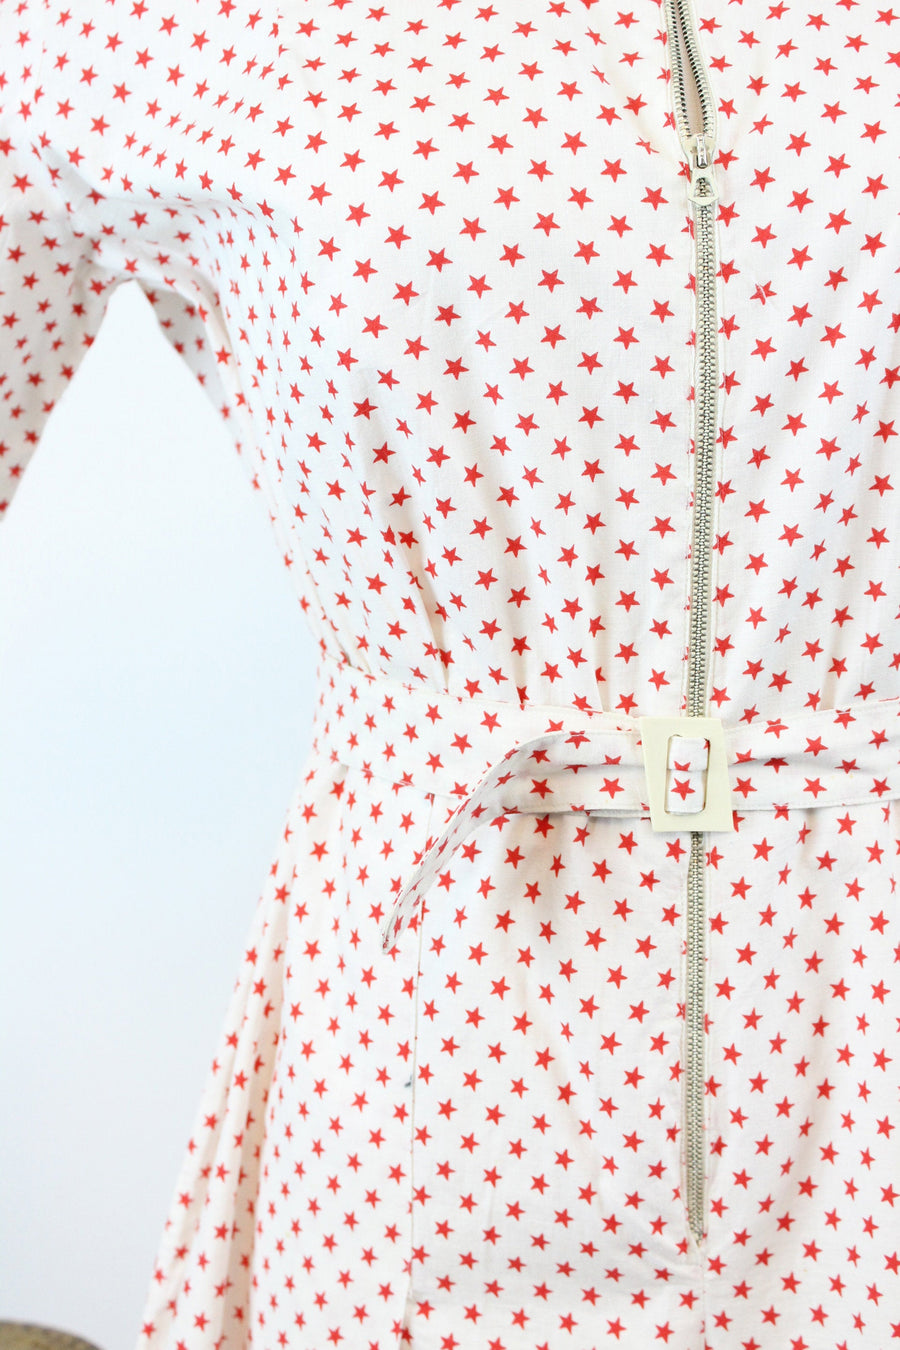 1940s star print romper medium large | vintage novelty print cotton playsuit